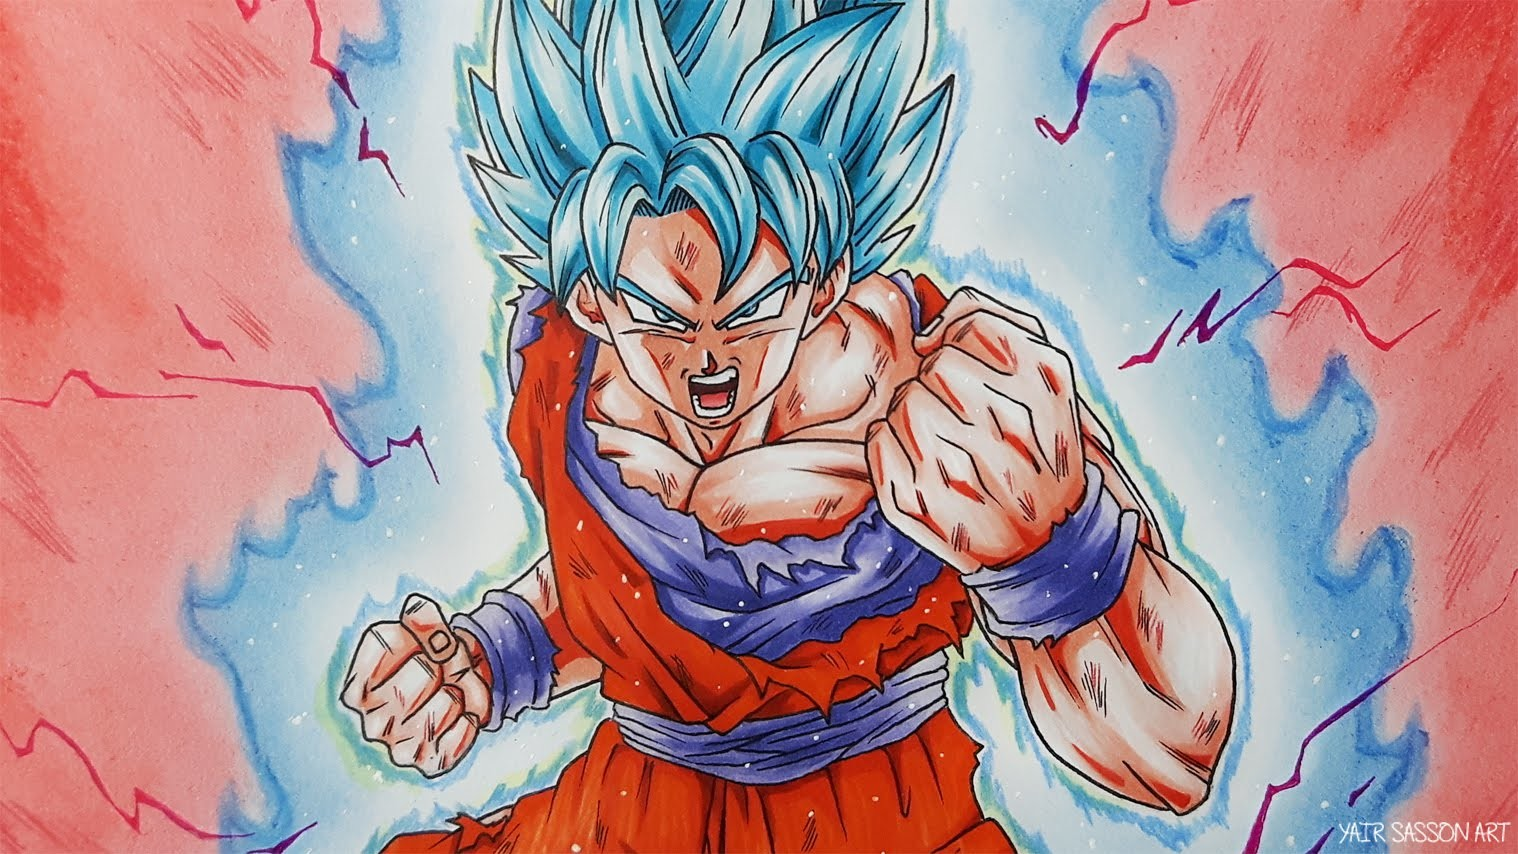 How To Draw Goku Super Saiyan Hzbm O Dragon Ball Z Photo